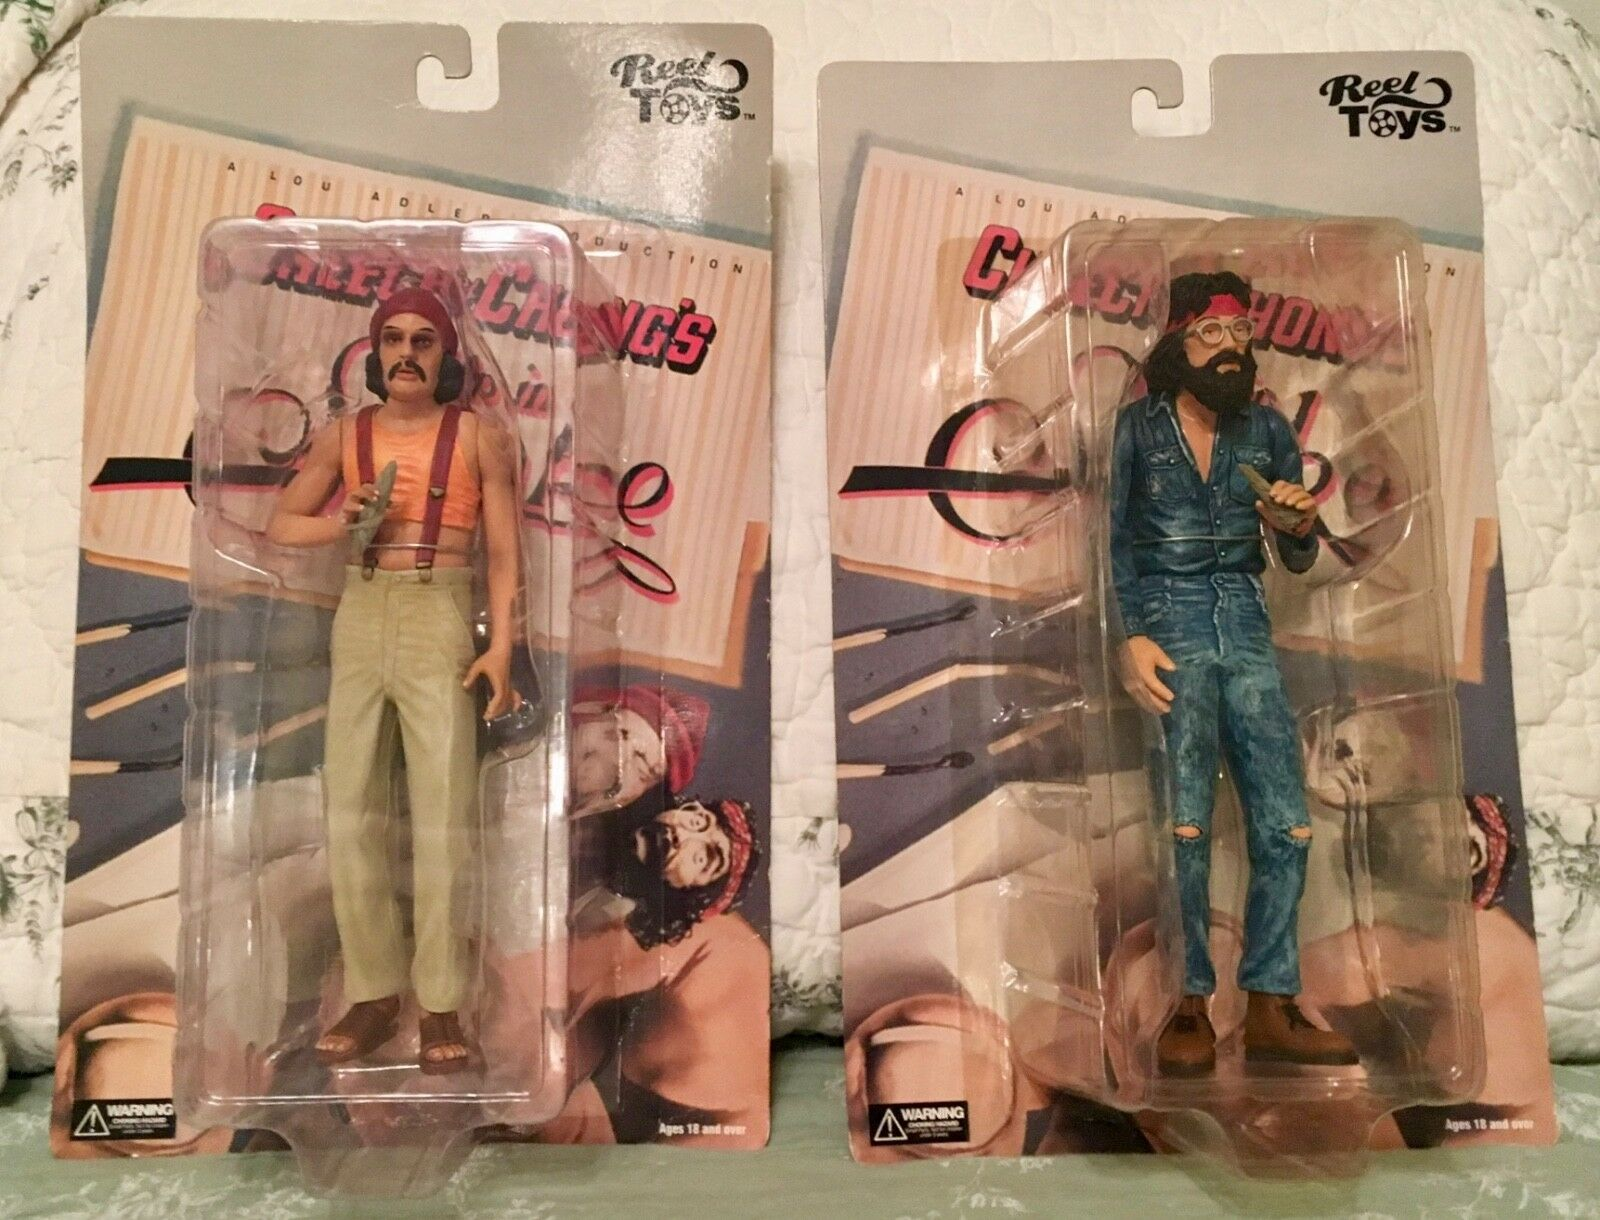 Up In Smoke, Pedro and Man Dolls, Figures, Unopened Condition